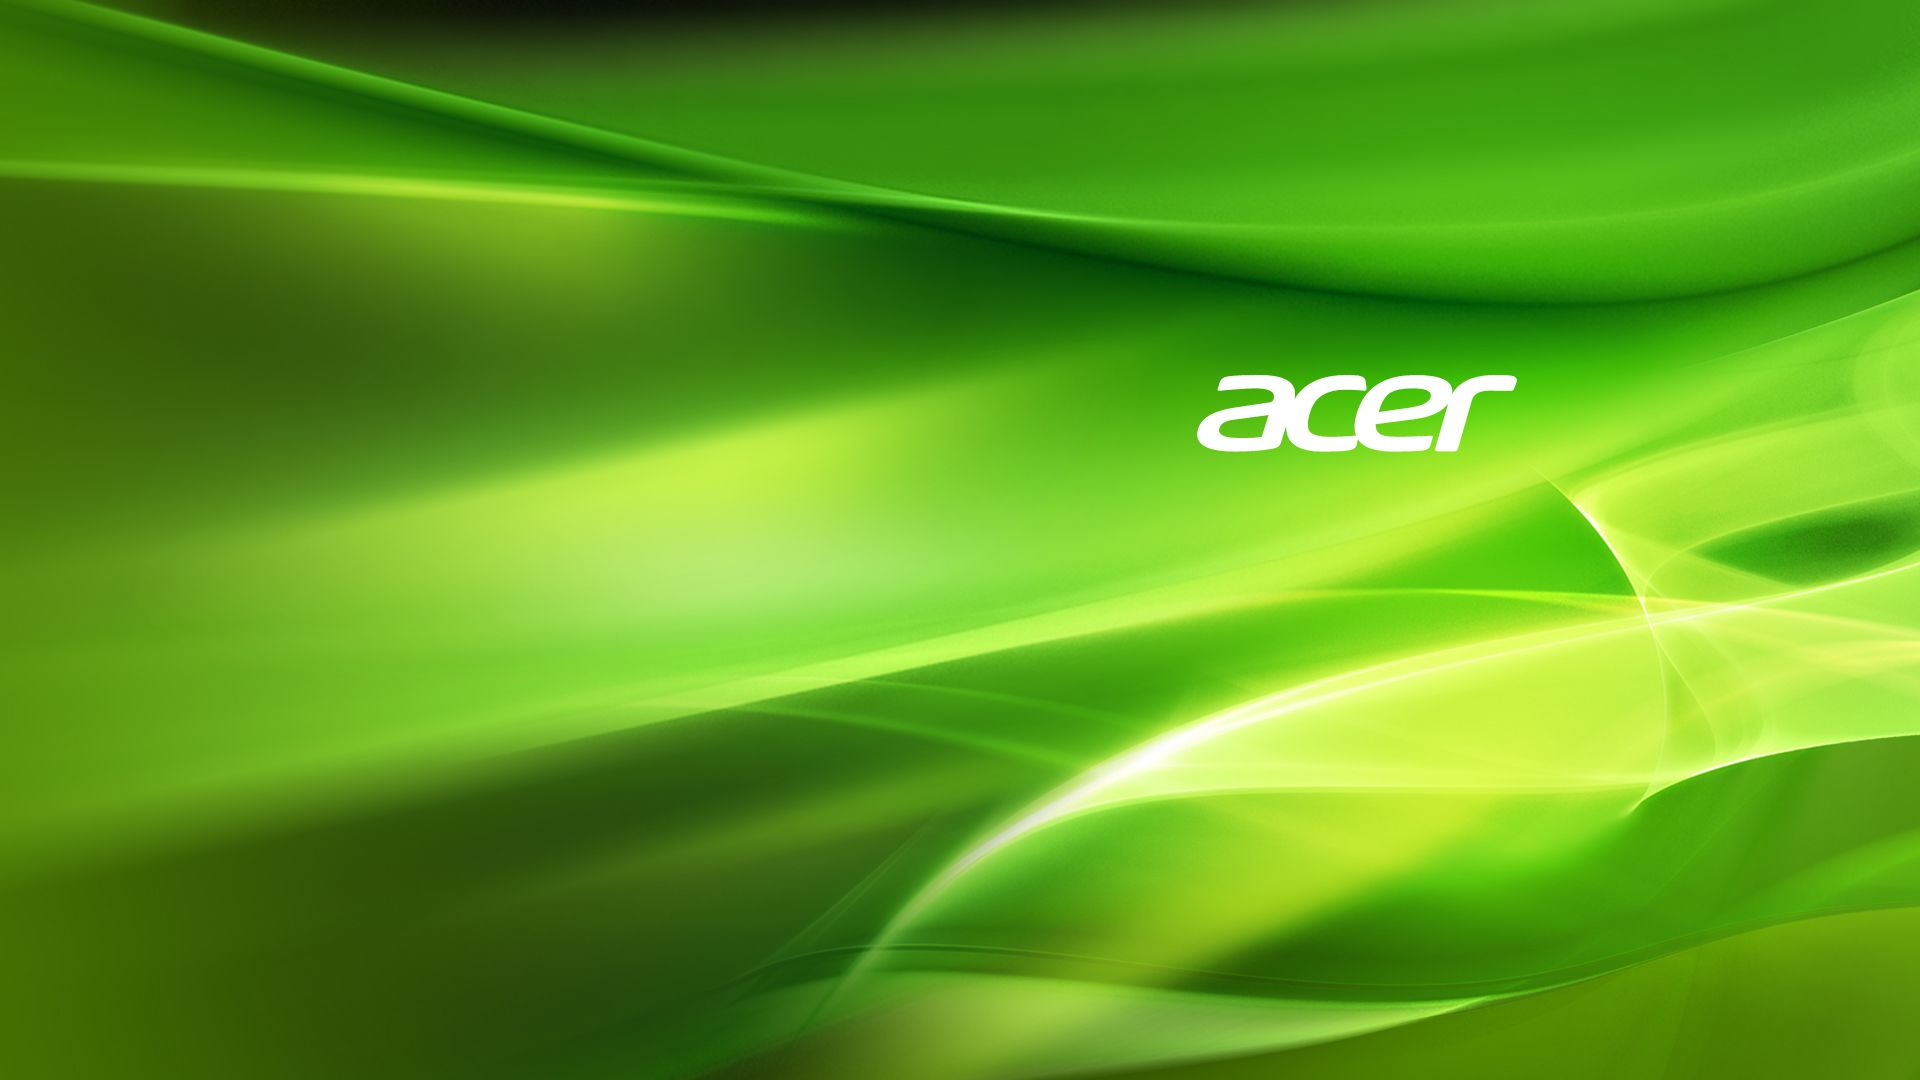 Acer Desktop Background Wallpaper En 2019 Pantalla Fondos